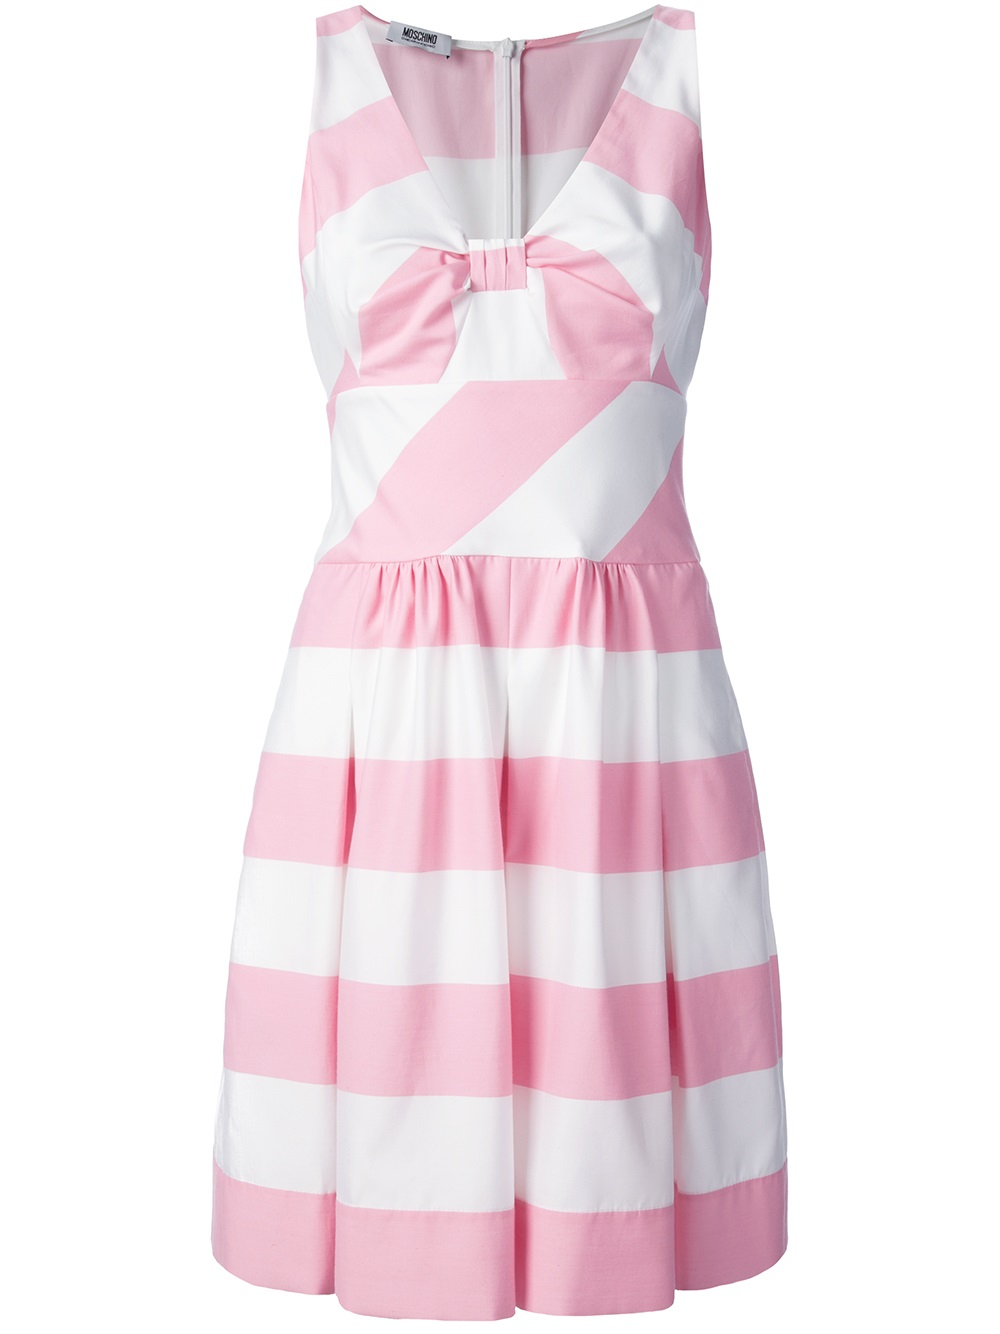 7acd896f404 Boutique Moschino Striped Dress in Pink - Lyst